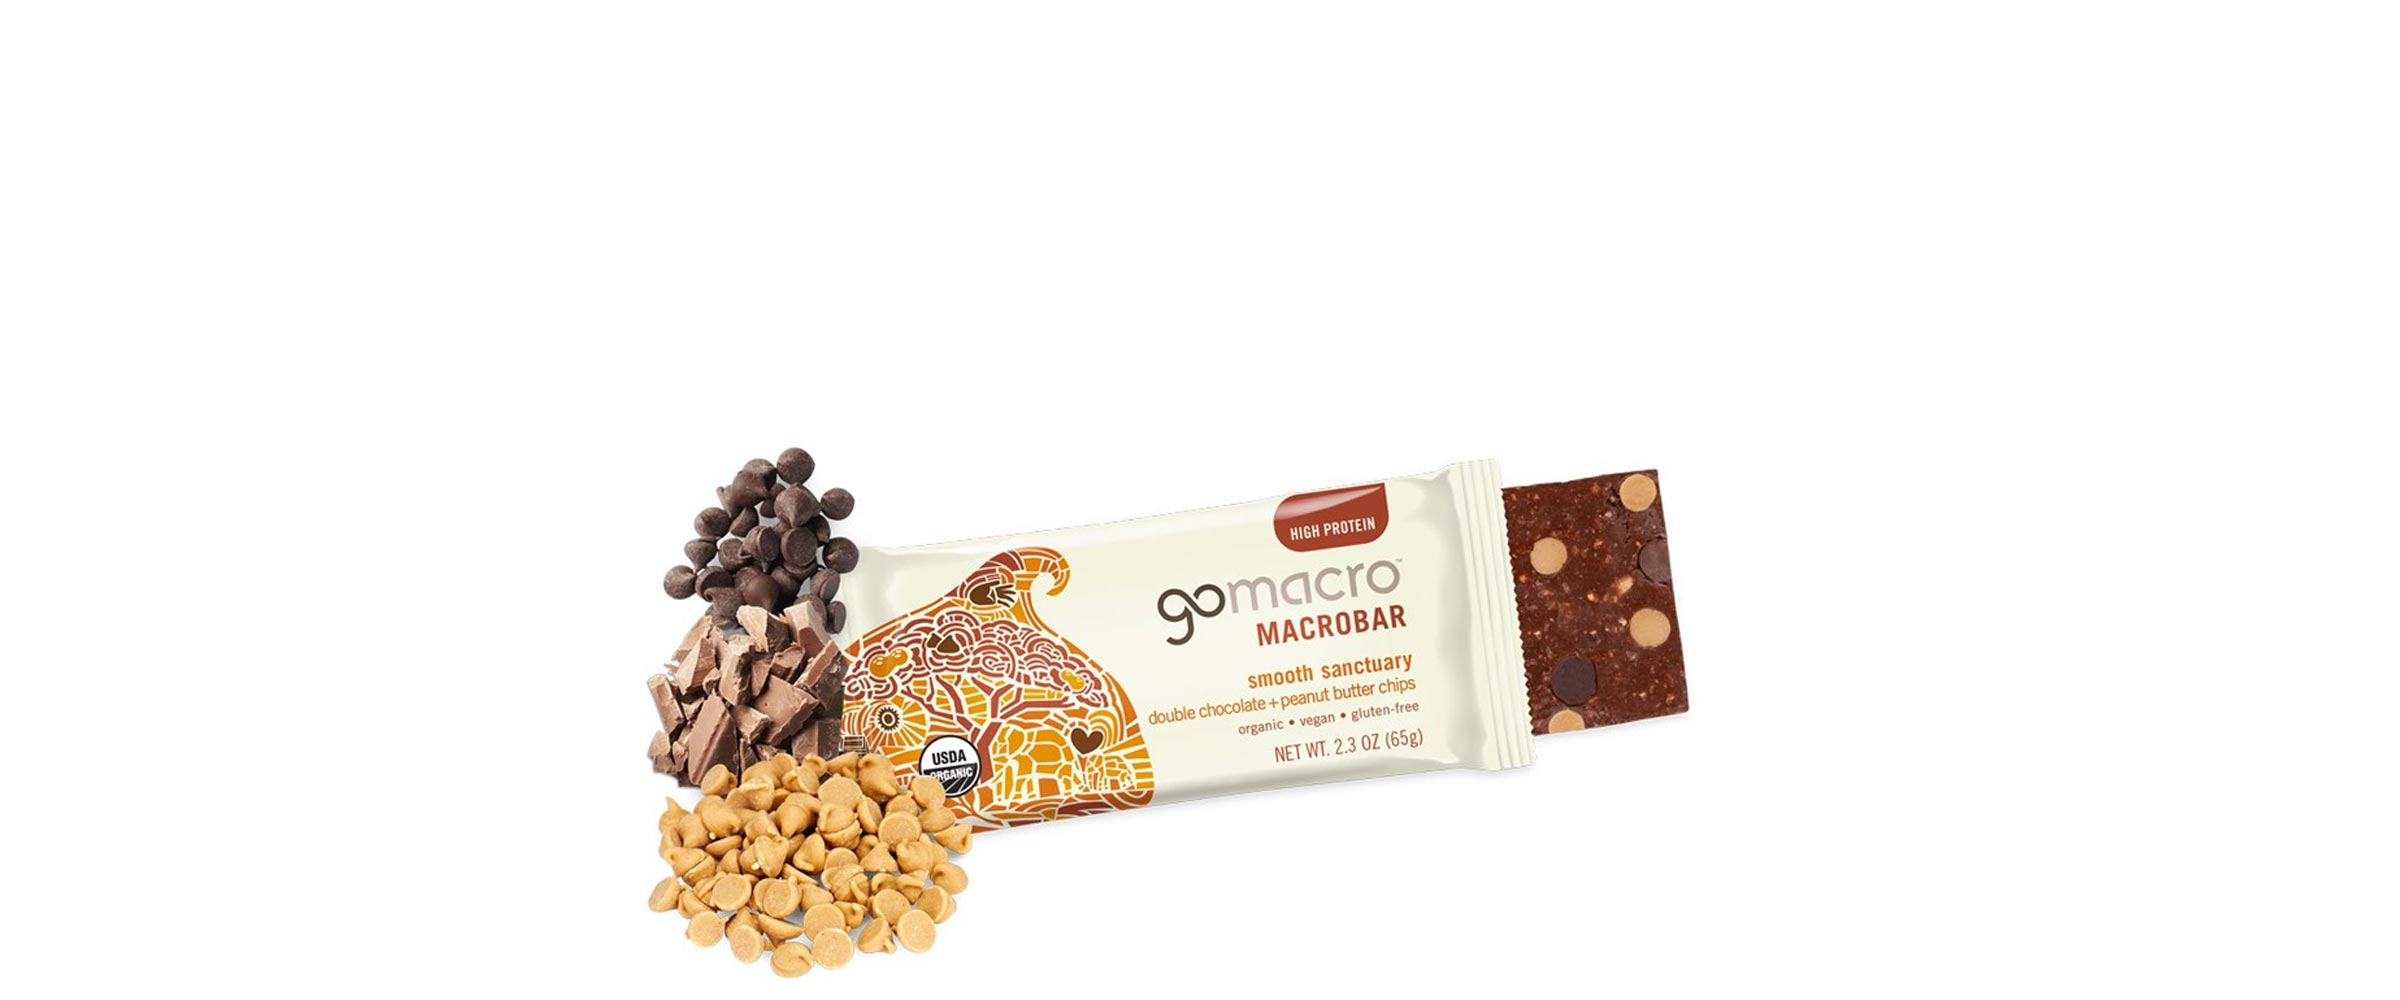 Plant-Based Snack Bar Supplier Utilizes Online Product Catalog to Gain Exports